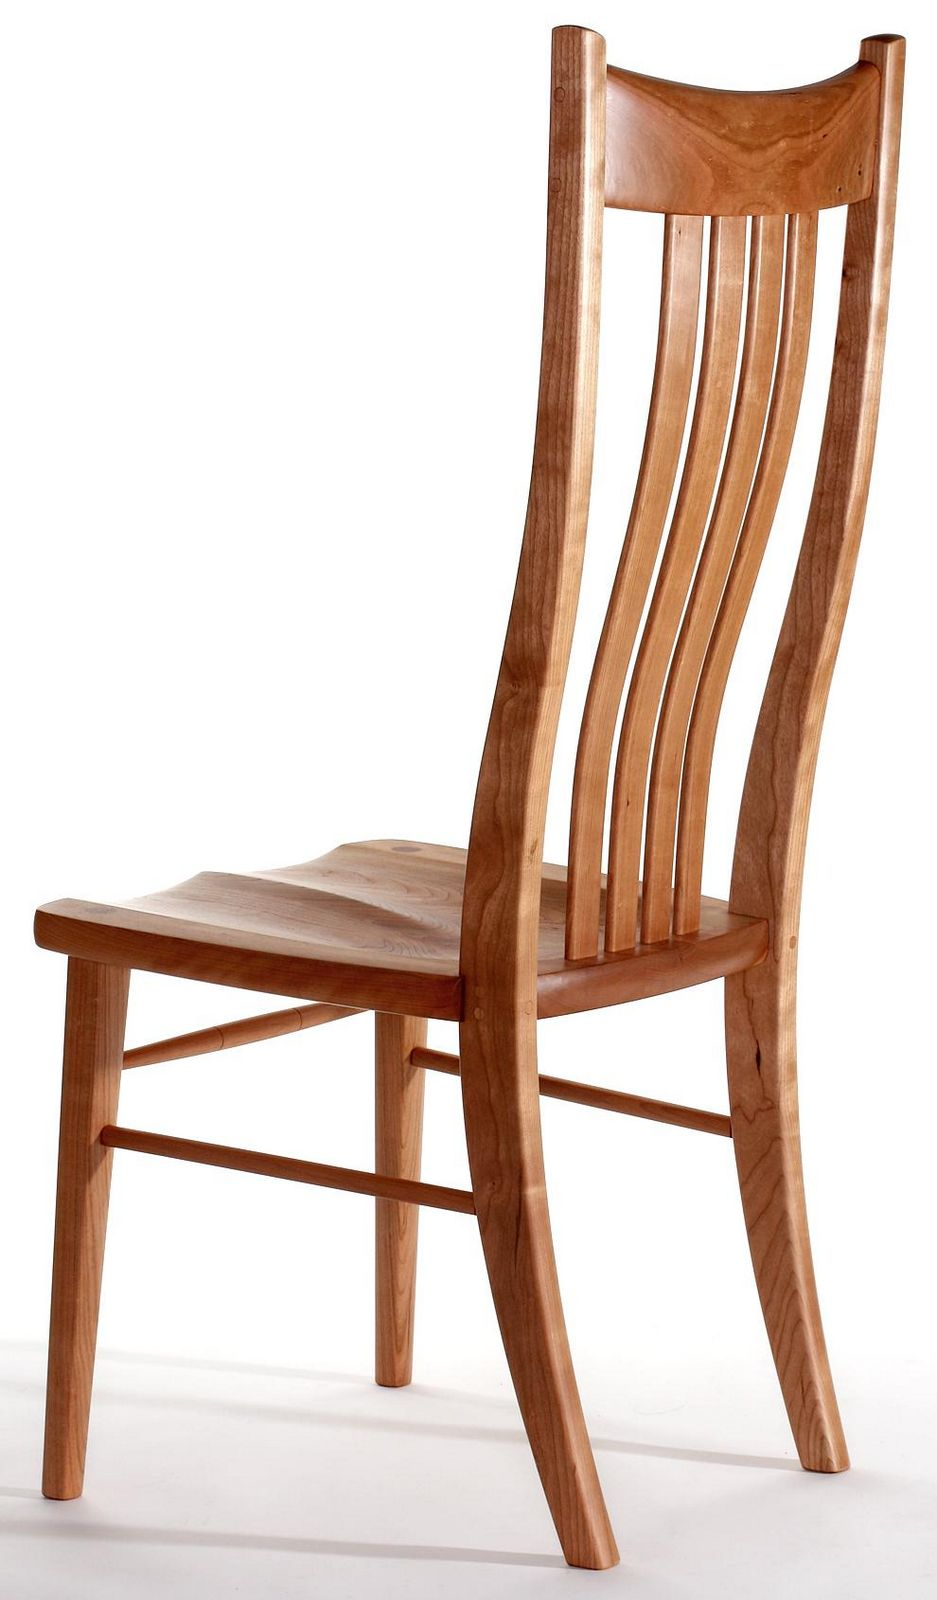 Cool wooden chair designs - Perfect Chair Furniture Design Furniture Design Collection Wood Chair Walmartcom Designs Chair Furniture Design